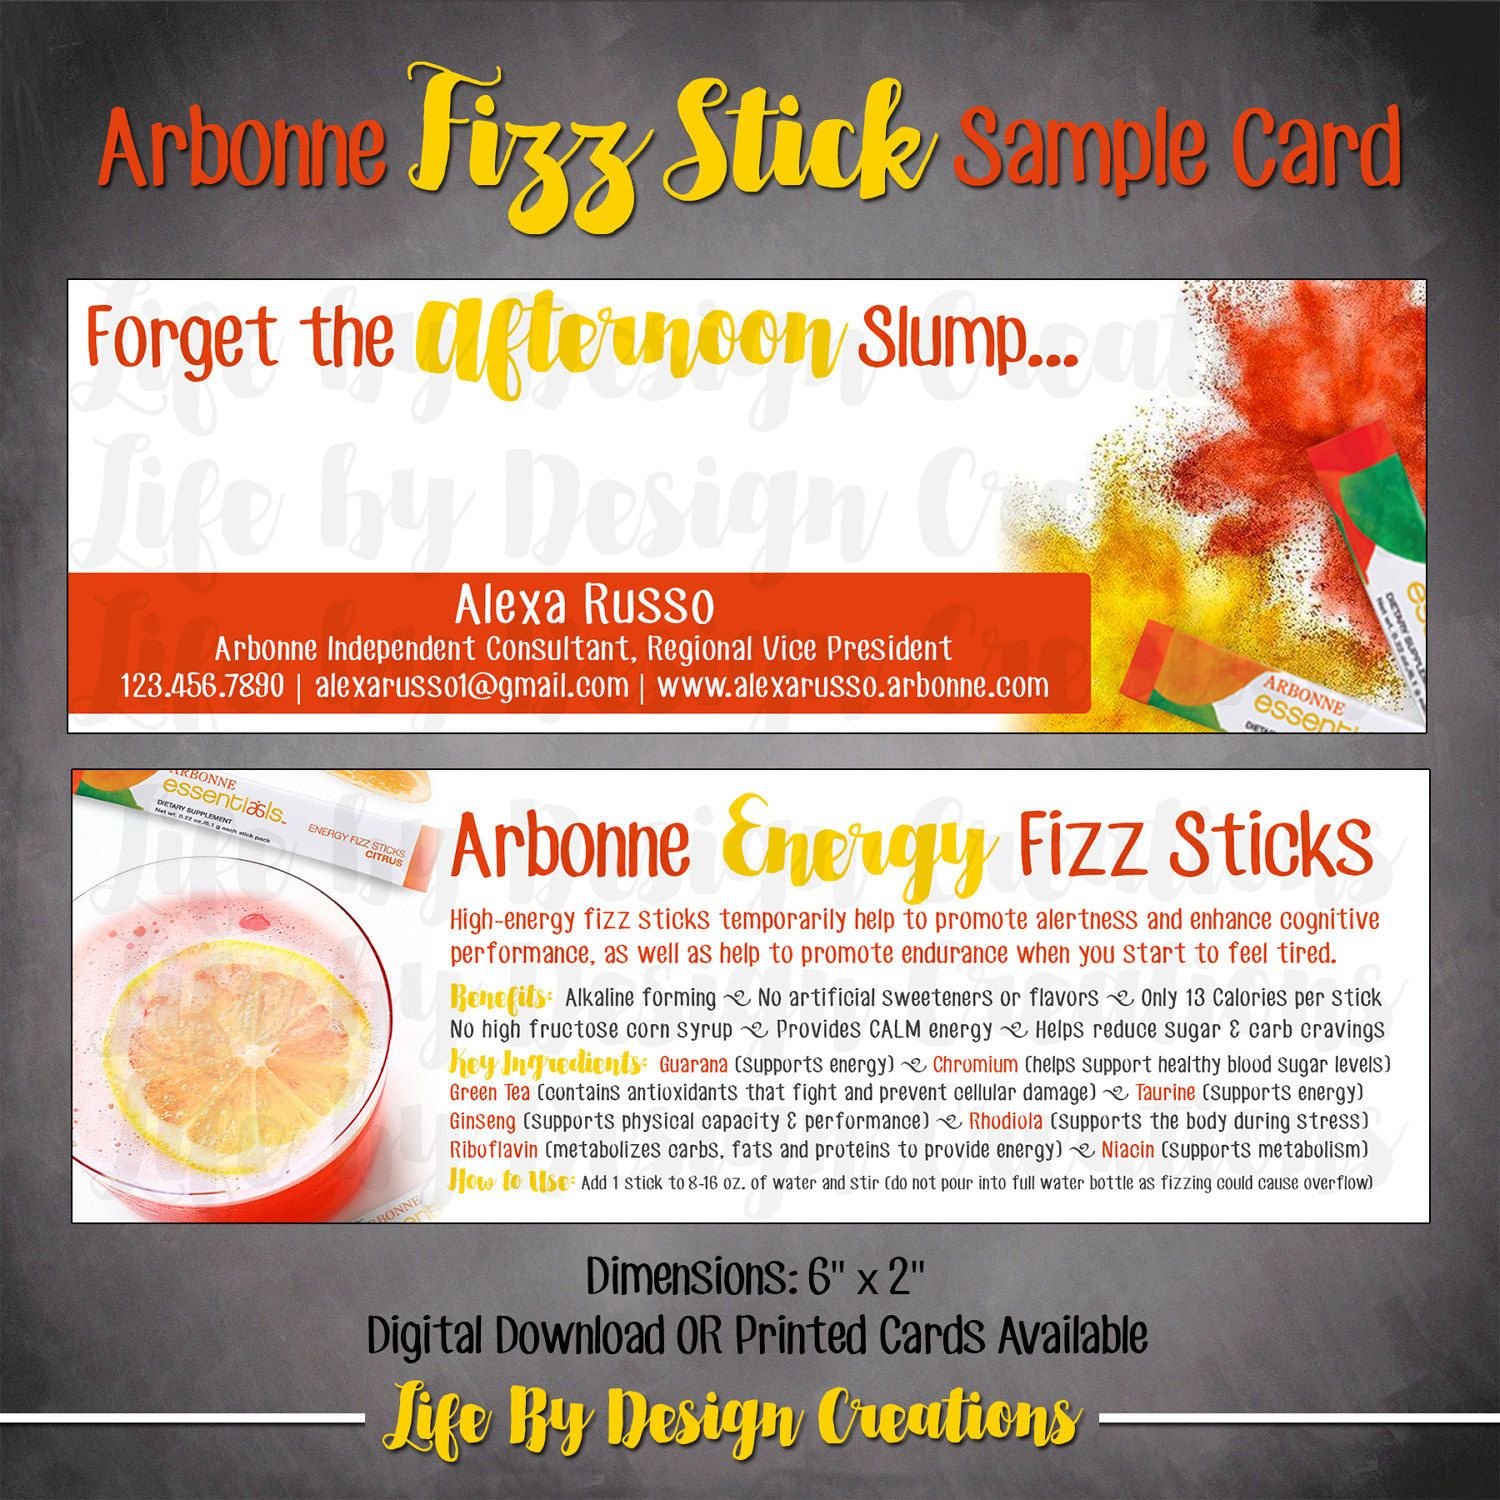 Arbonne Fizz Stick Sample Card  Download By Livealifebydesign On